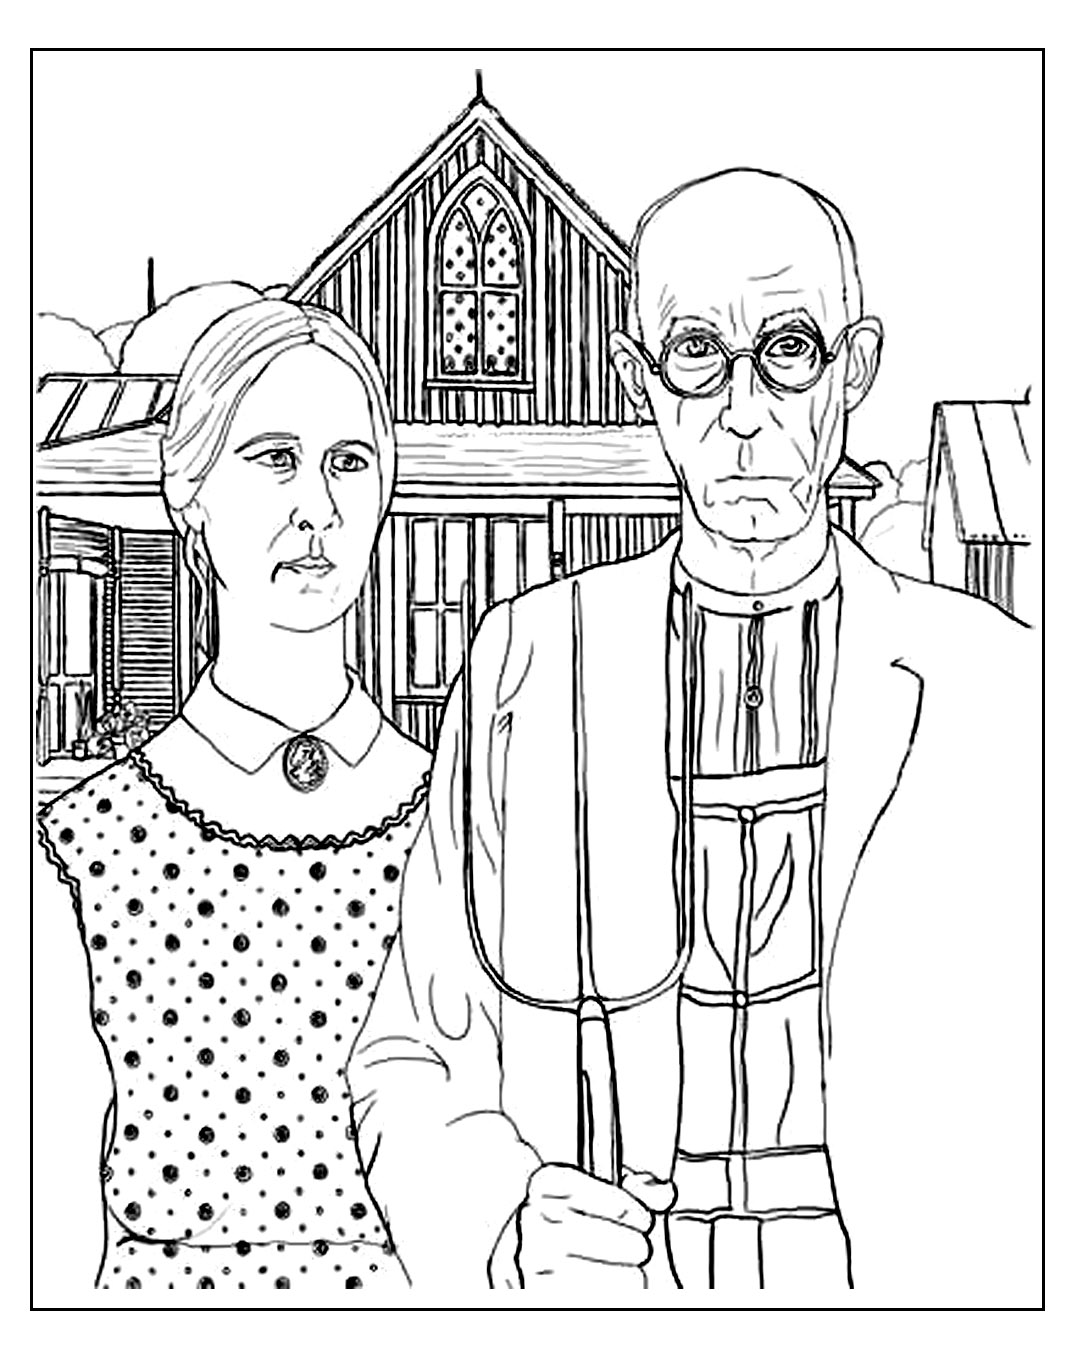 Grant wood american gothic chefs d uvres coloriages - Coloriage art ...